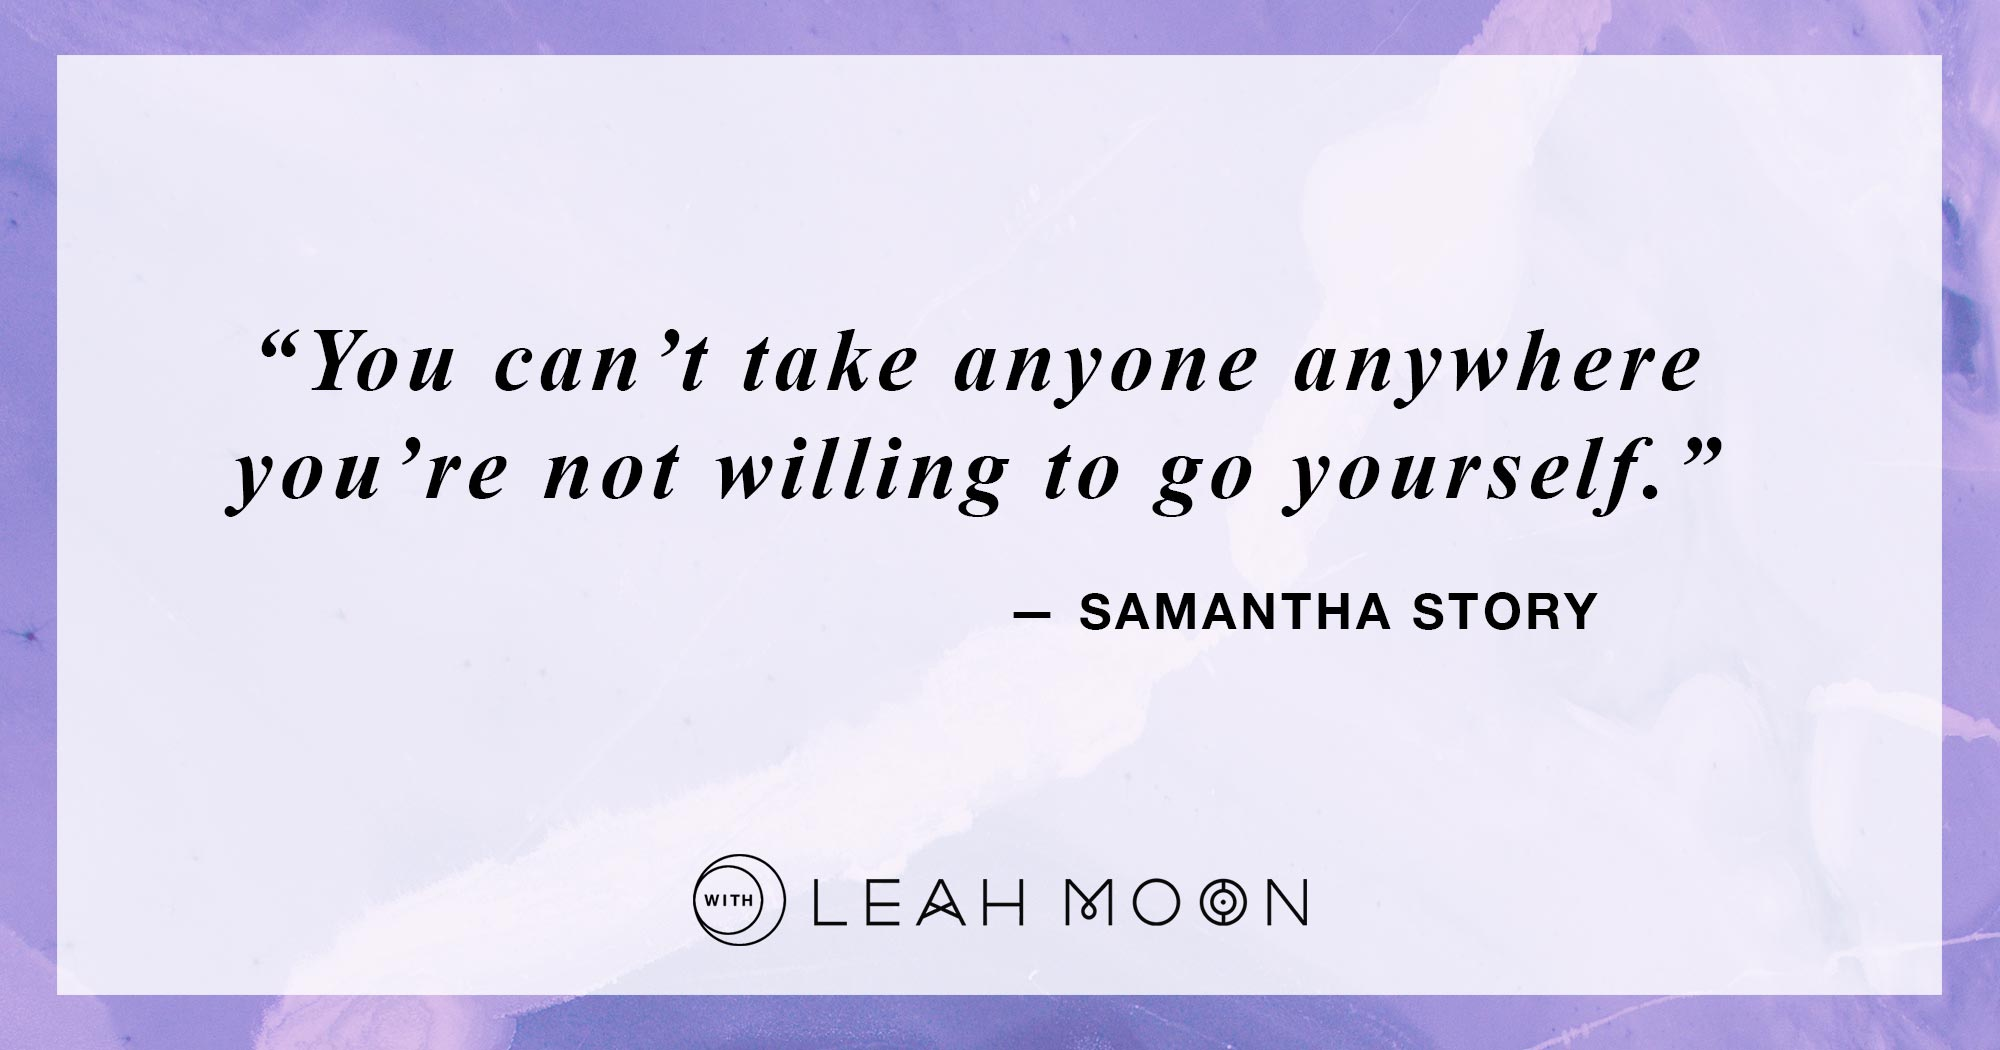 """You can't take anyone anywhere you're not willing to go yourself."" — Samantha Story"